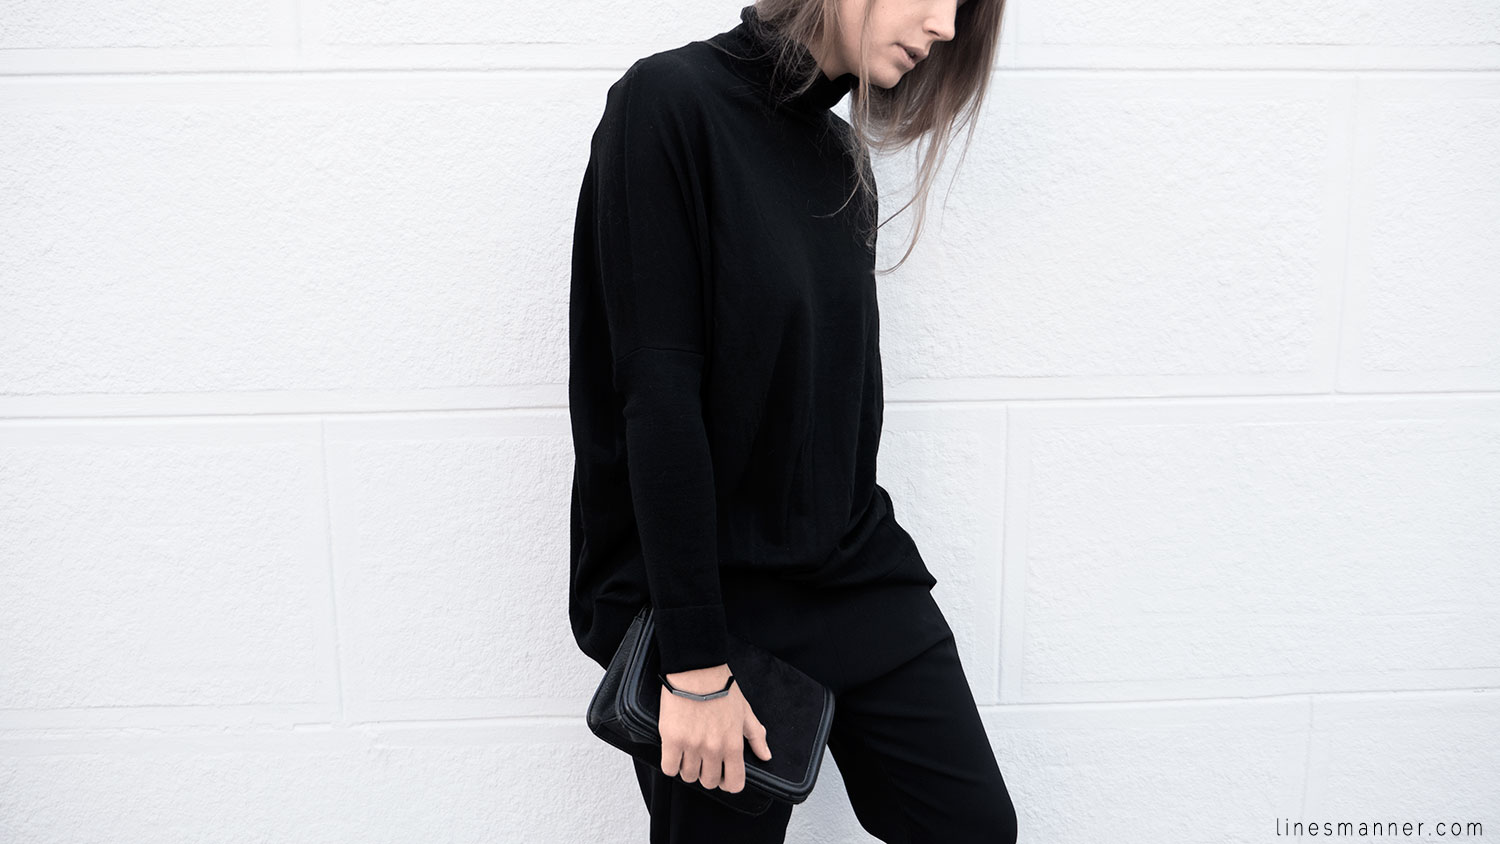 Lines-Manner-Minimalism-Details-Black-All_black_everything-Simplicity-Timeless-Modern-Monochrome-Essential-Basics-Staples_pieces-Outfit-Design-Effortless-5